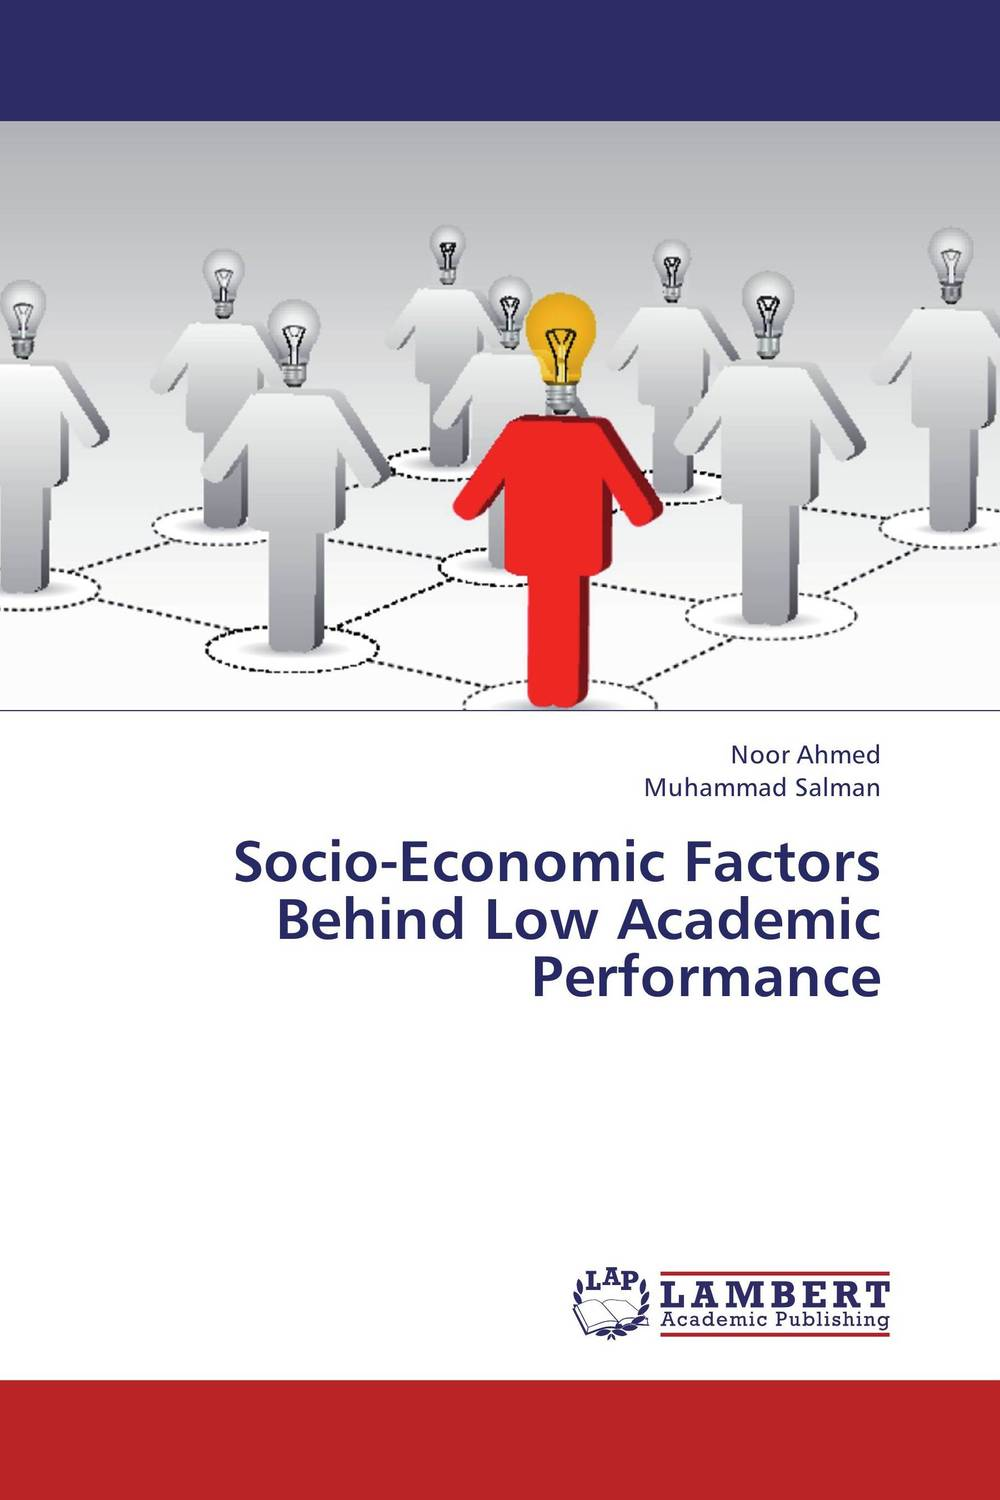 Socio-Economic Factors Behind Low Academic Performance tobias olweny and kenedy omondi the effect of macro economic factors on stock return volatility at nse